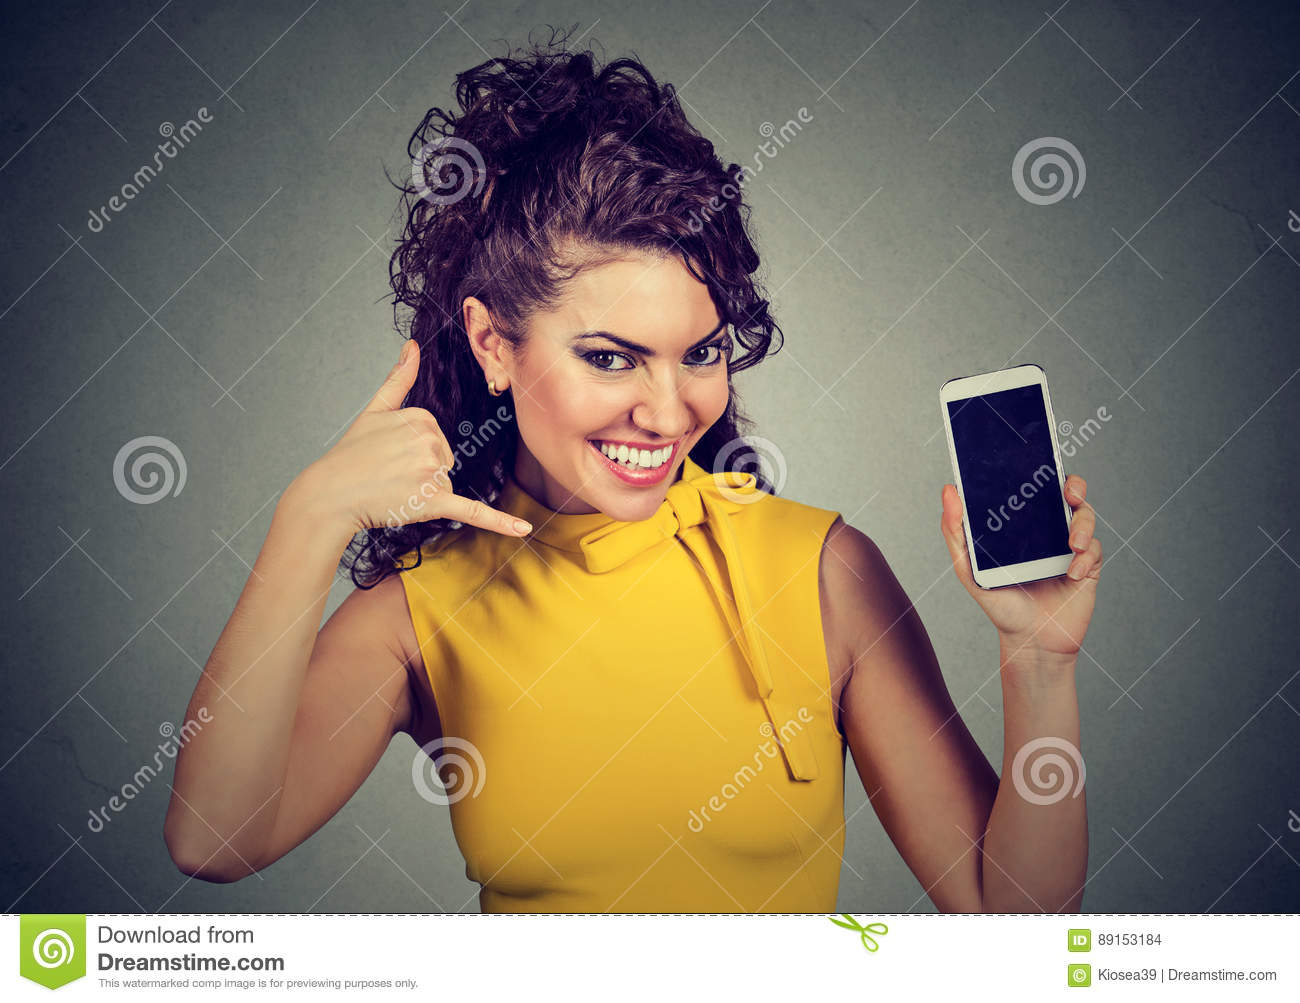 Pretty woman holding mobile phone showing call me hand gesture